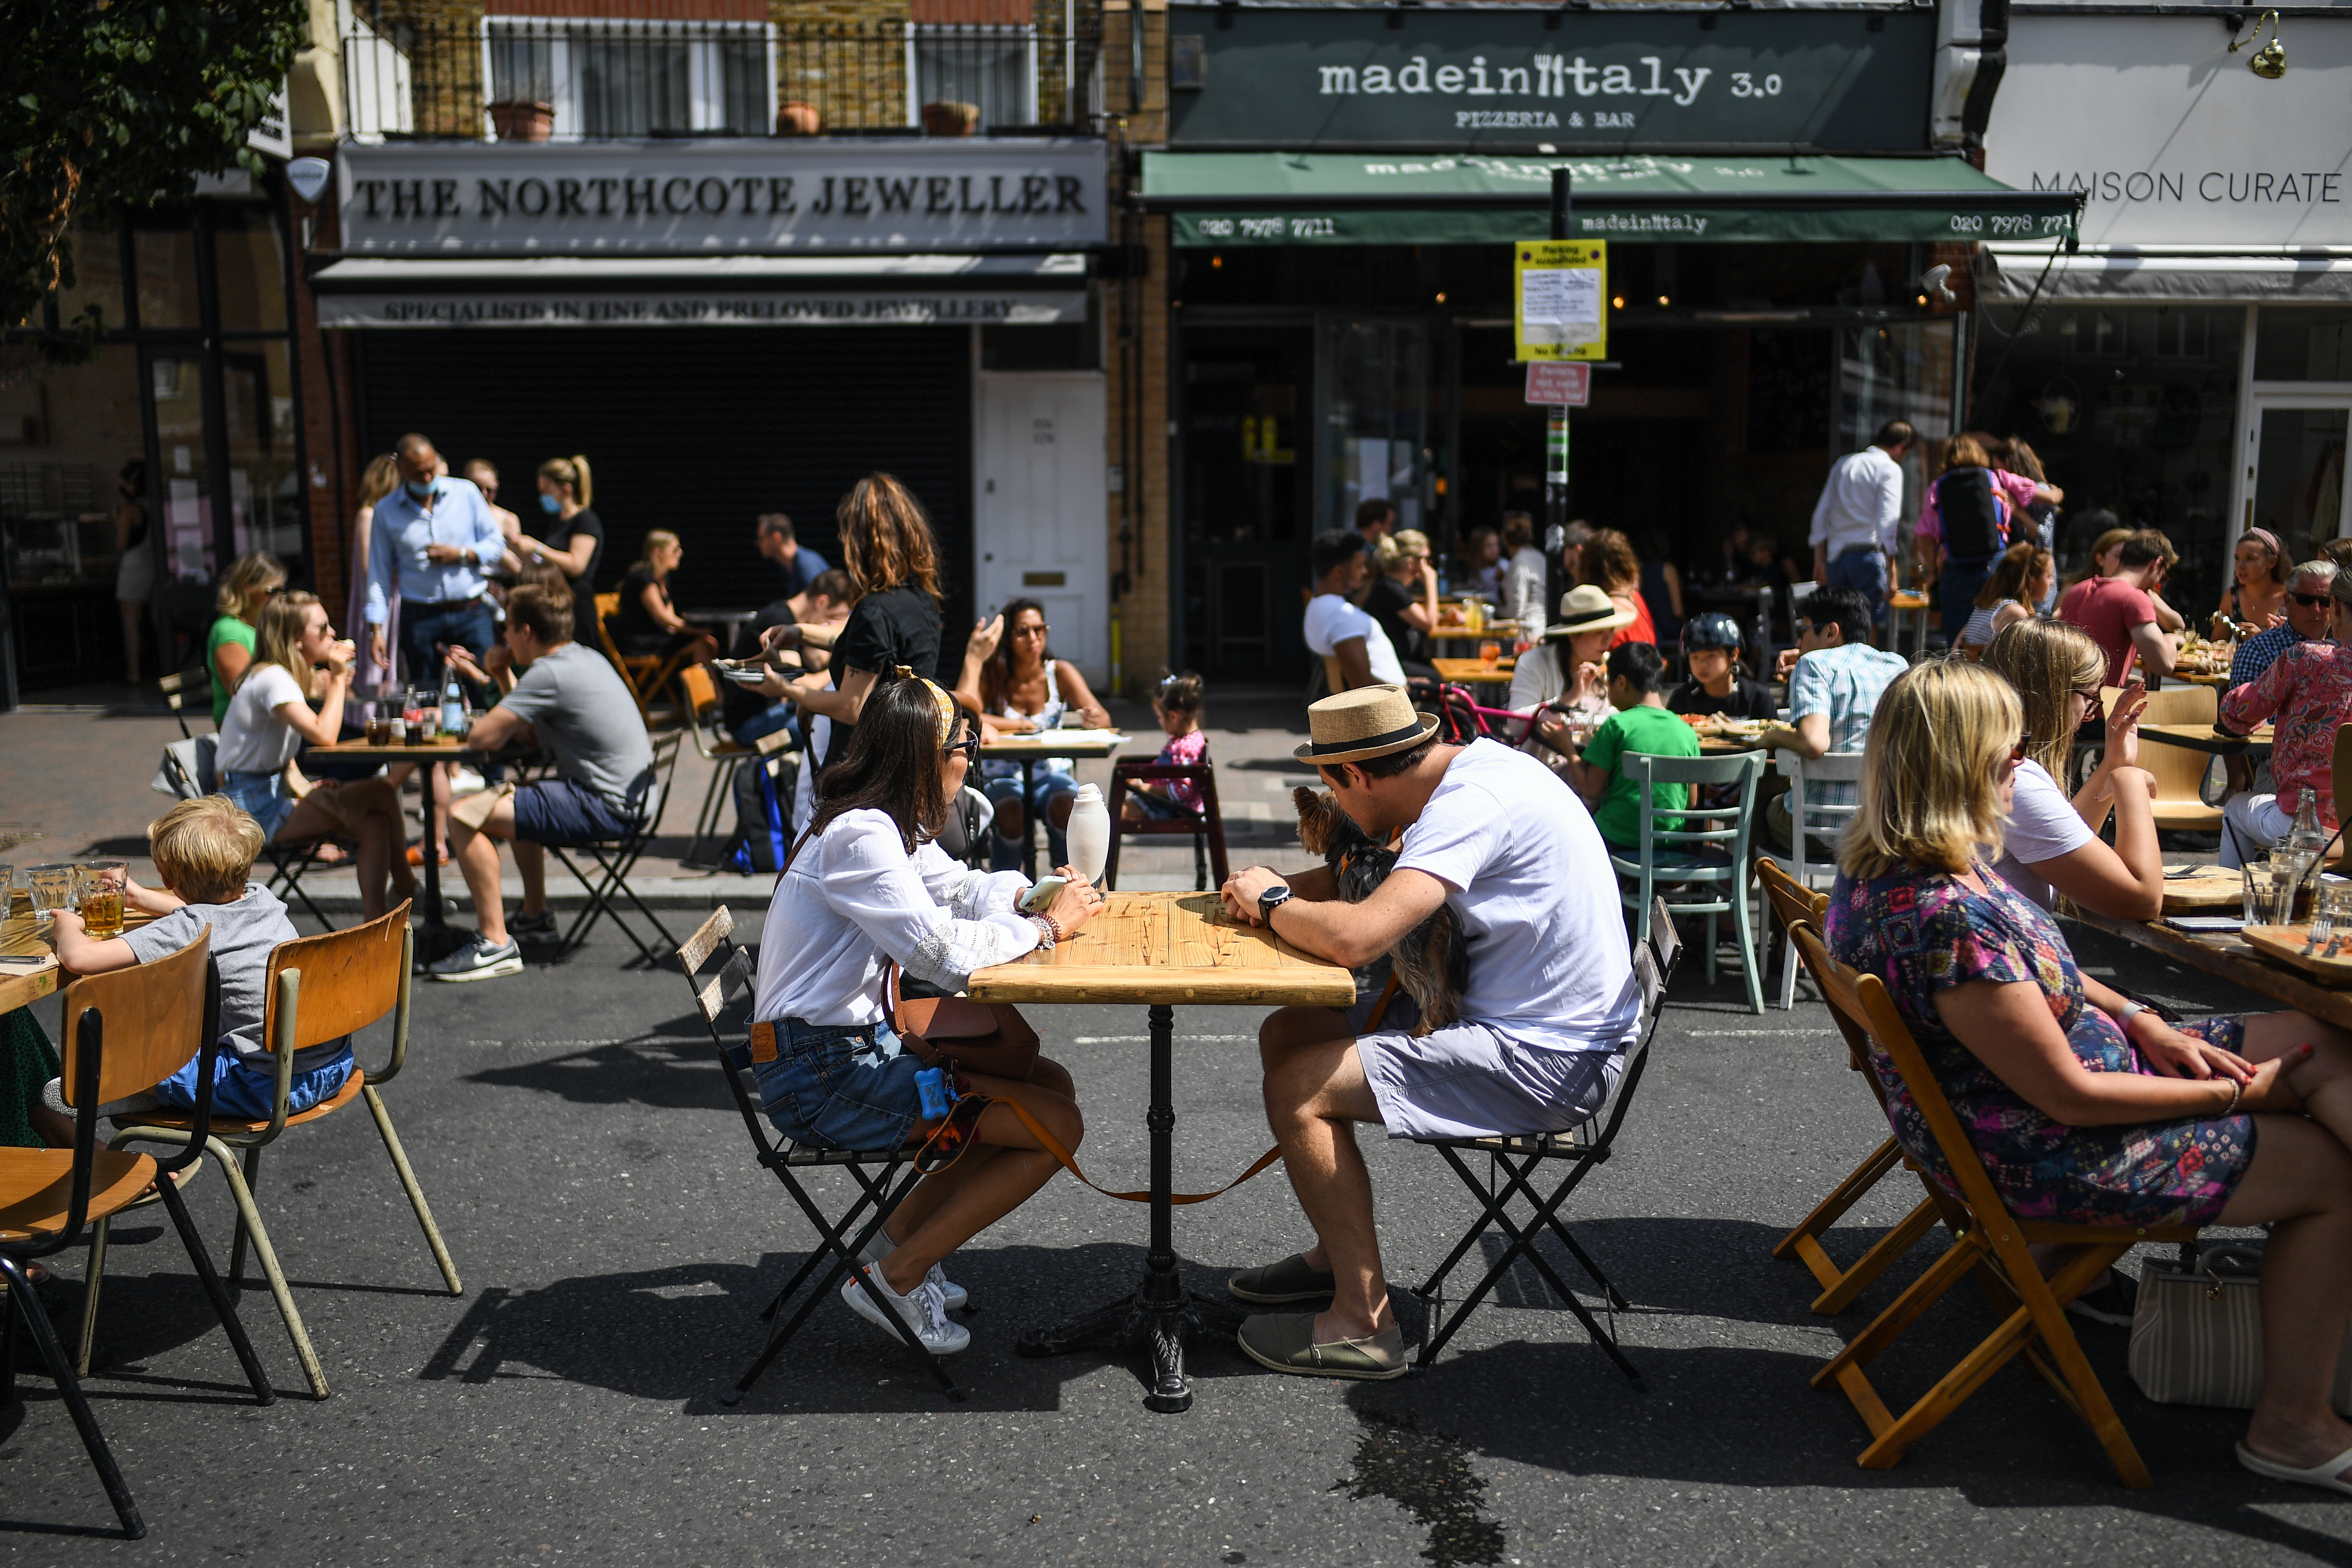 Diners sit outside at tables on a street in Clapham, London